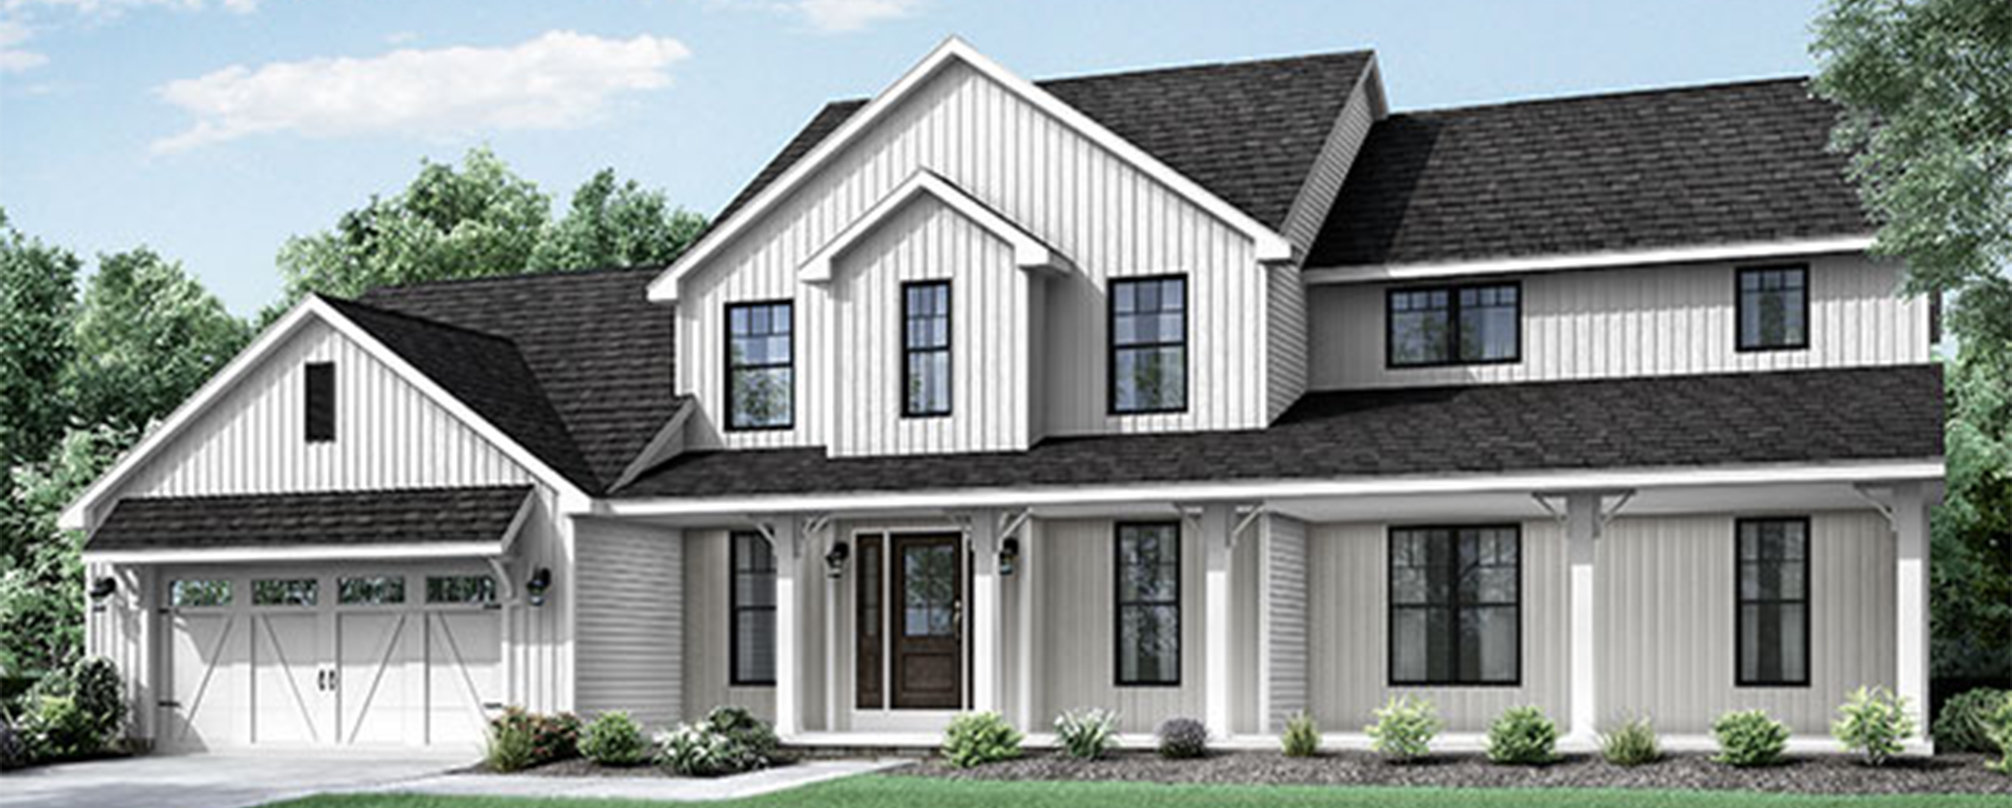 100 house plans under 150k 15m wide home plans for Home designs under 150k